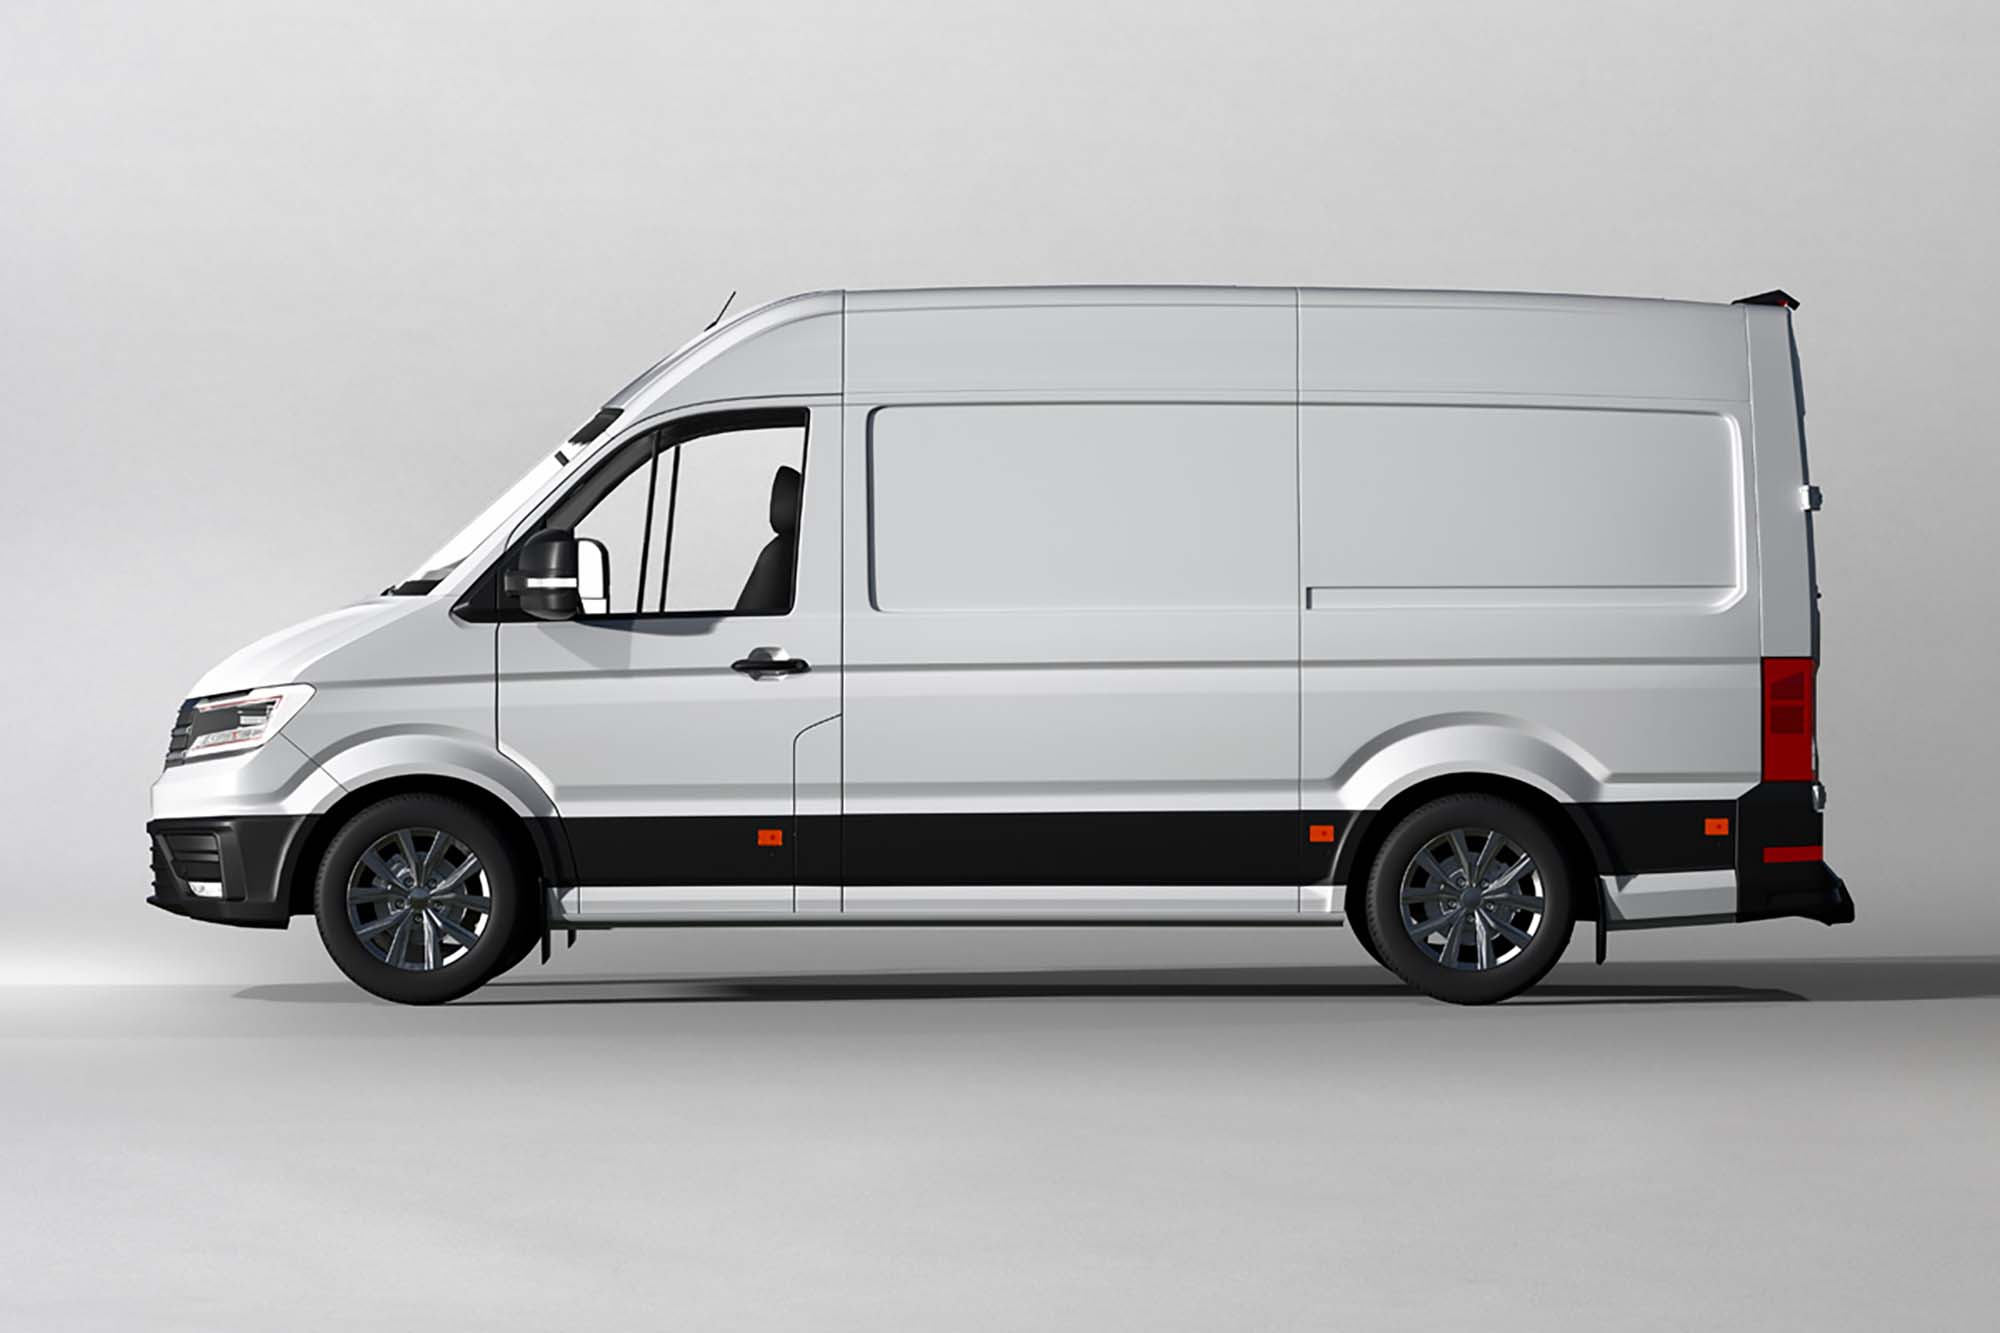 Vinyl Van Wrapping Mockup 2